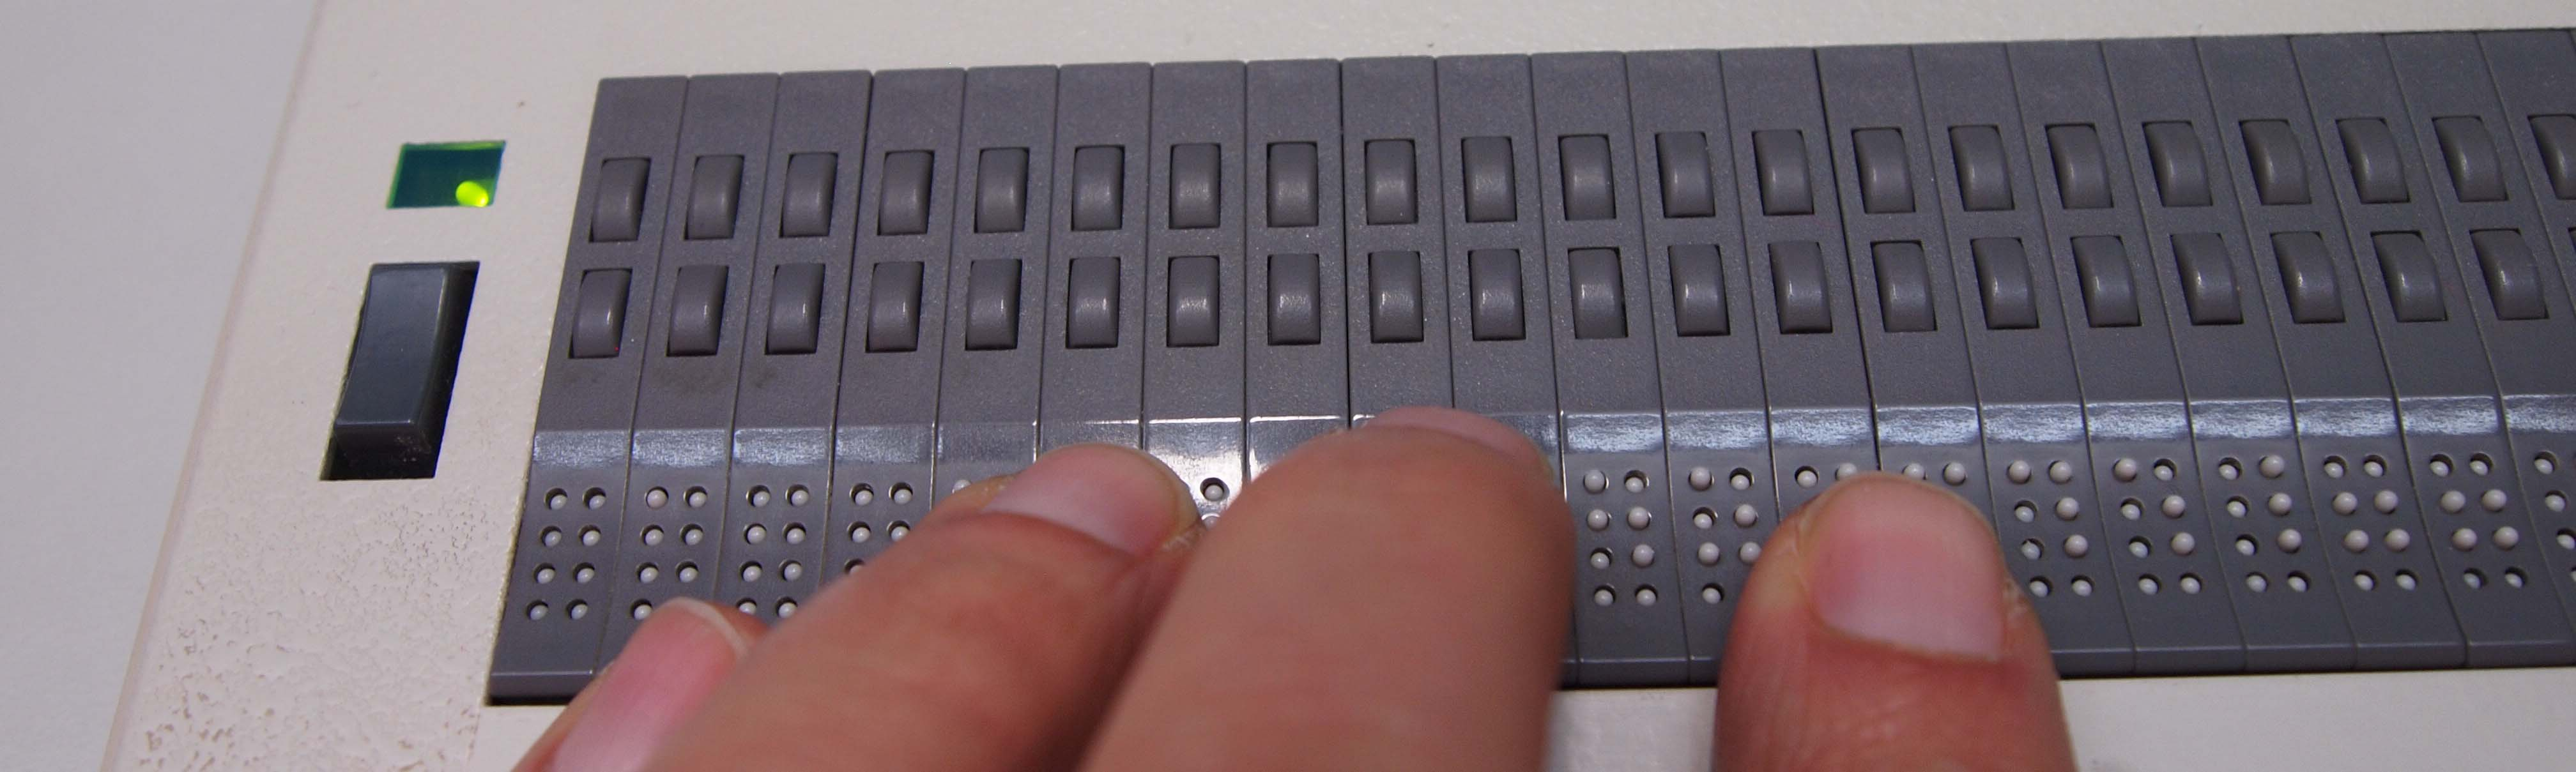 start_braille_display